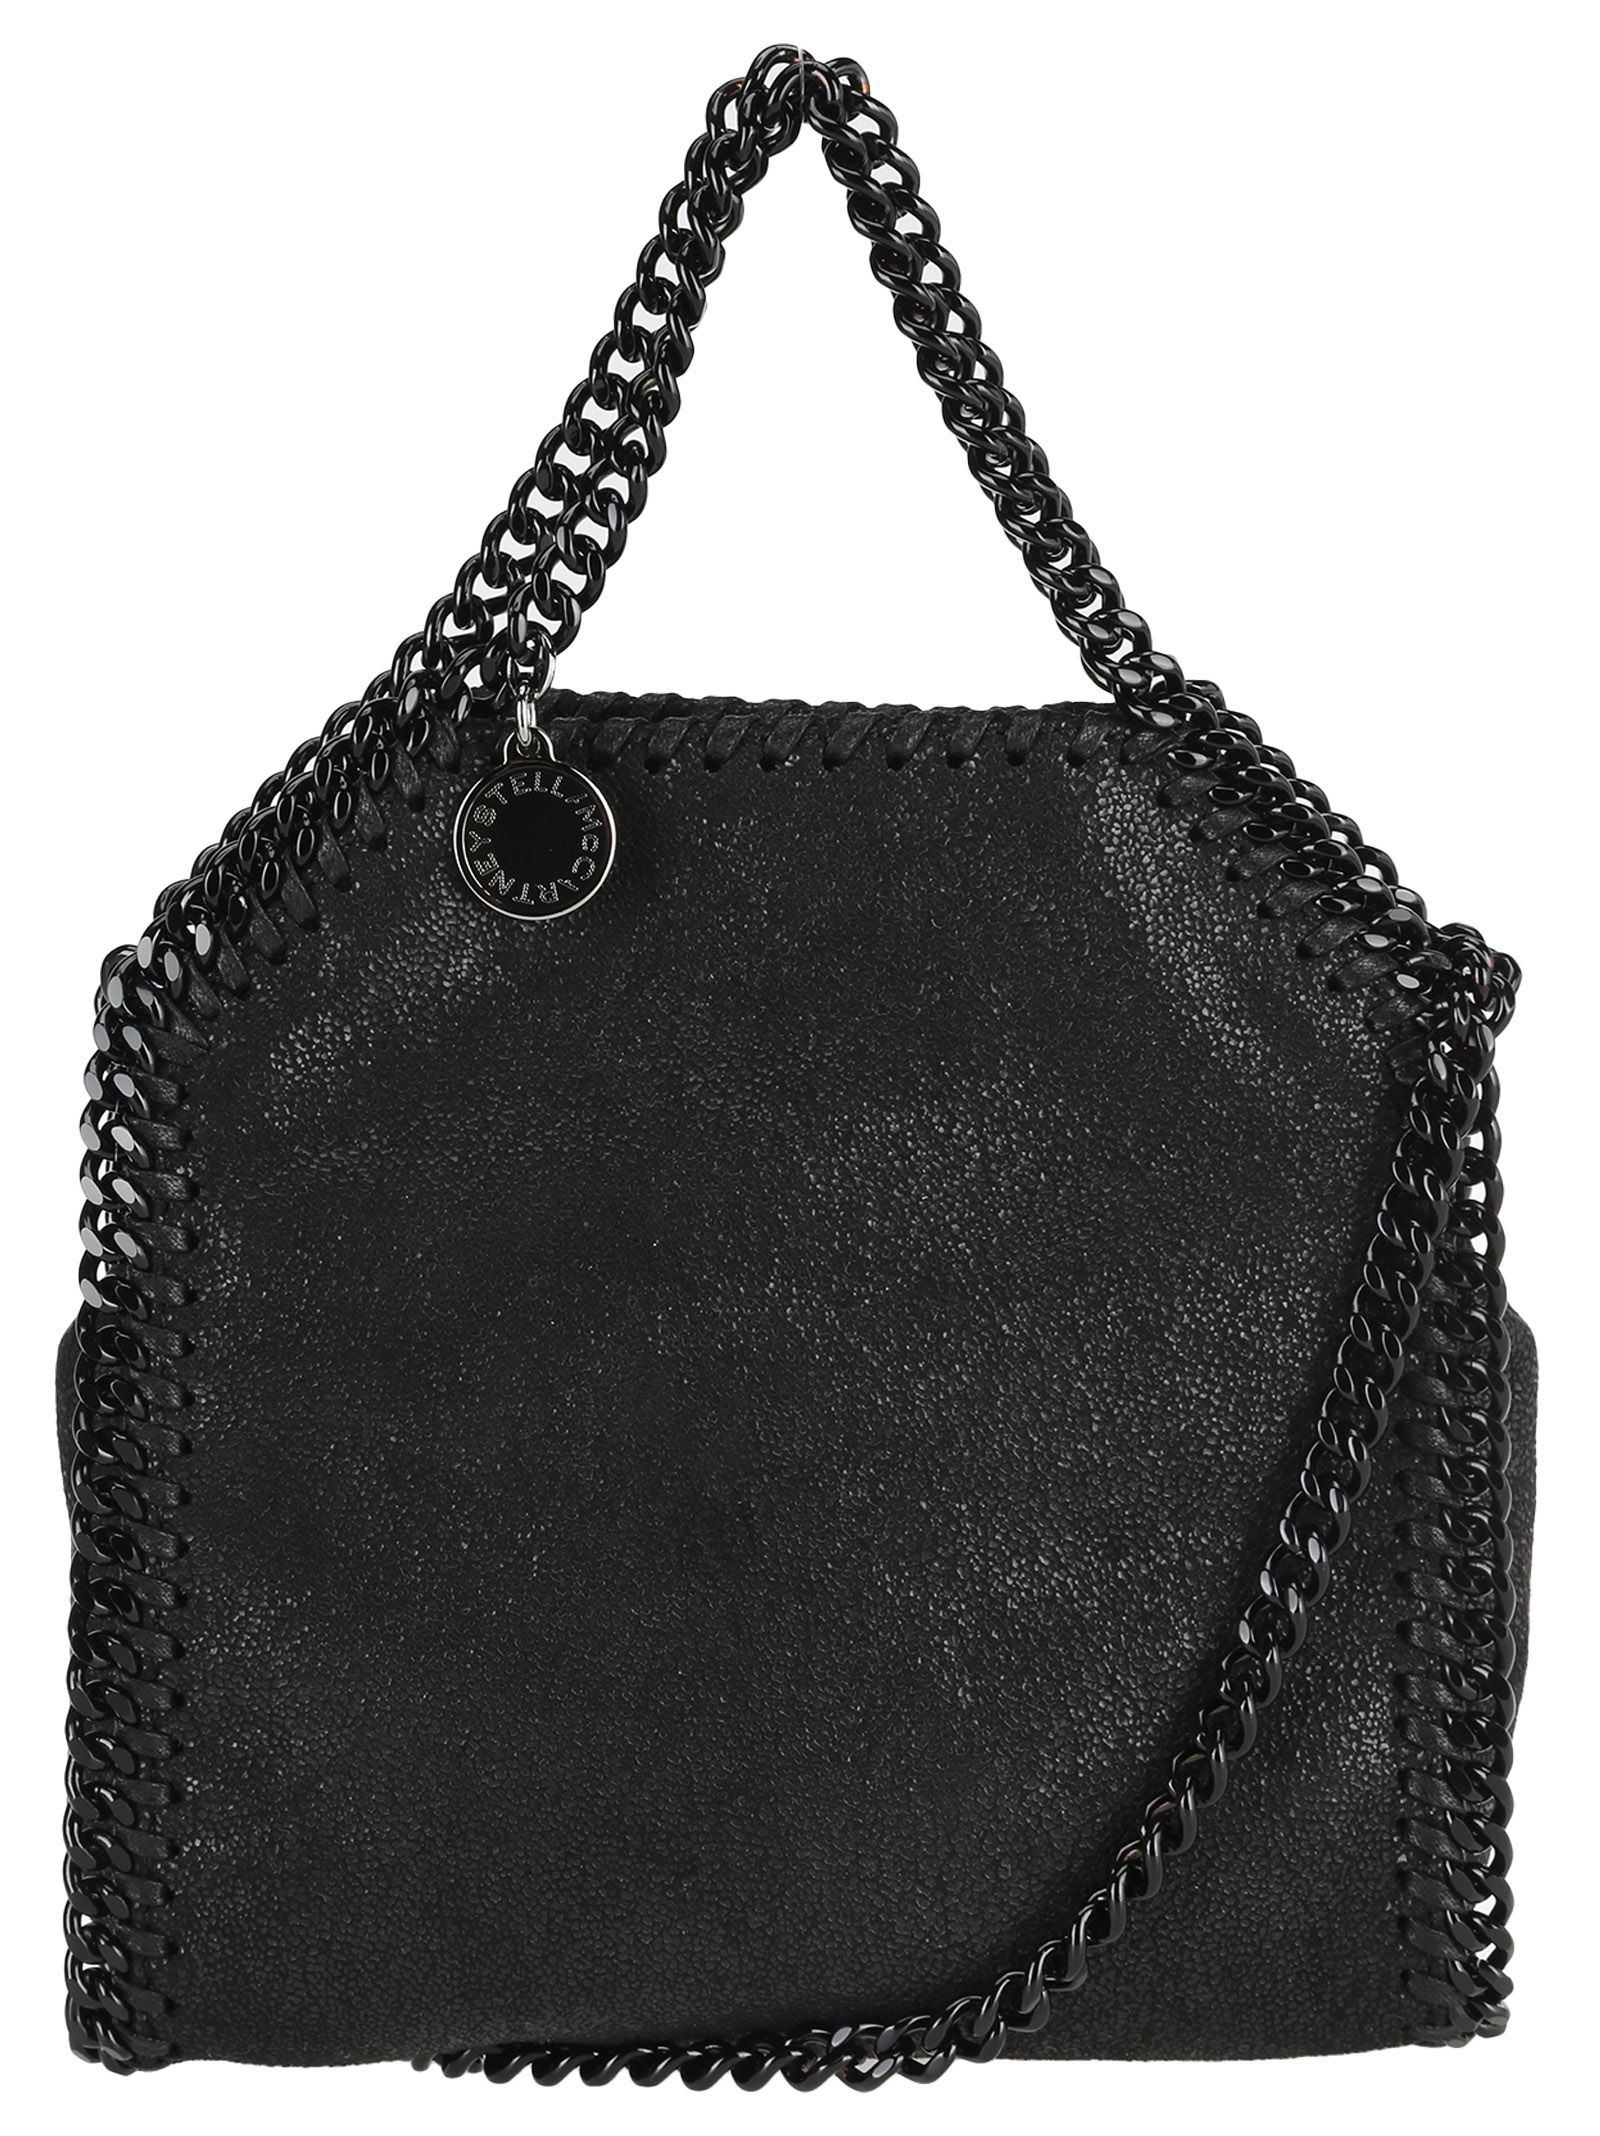 STELLA MCCARTNEY TINY FALABELLA BLACK CHAIN